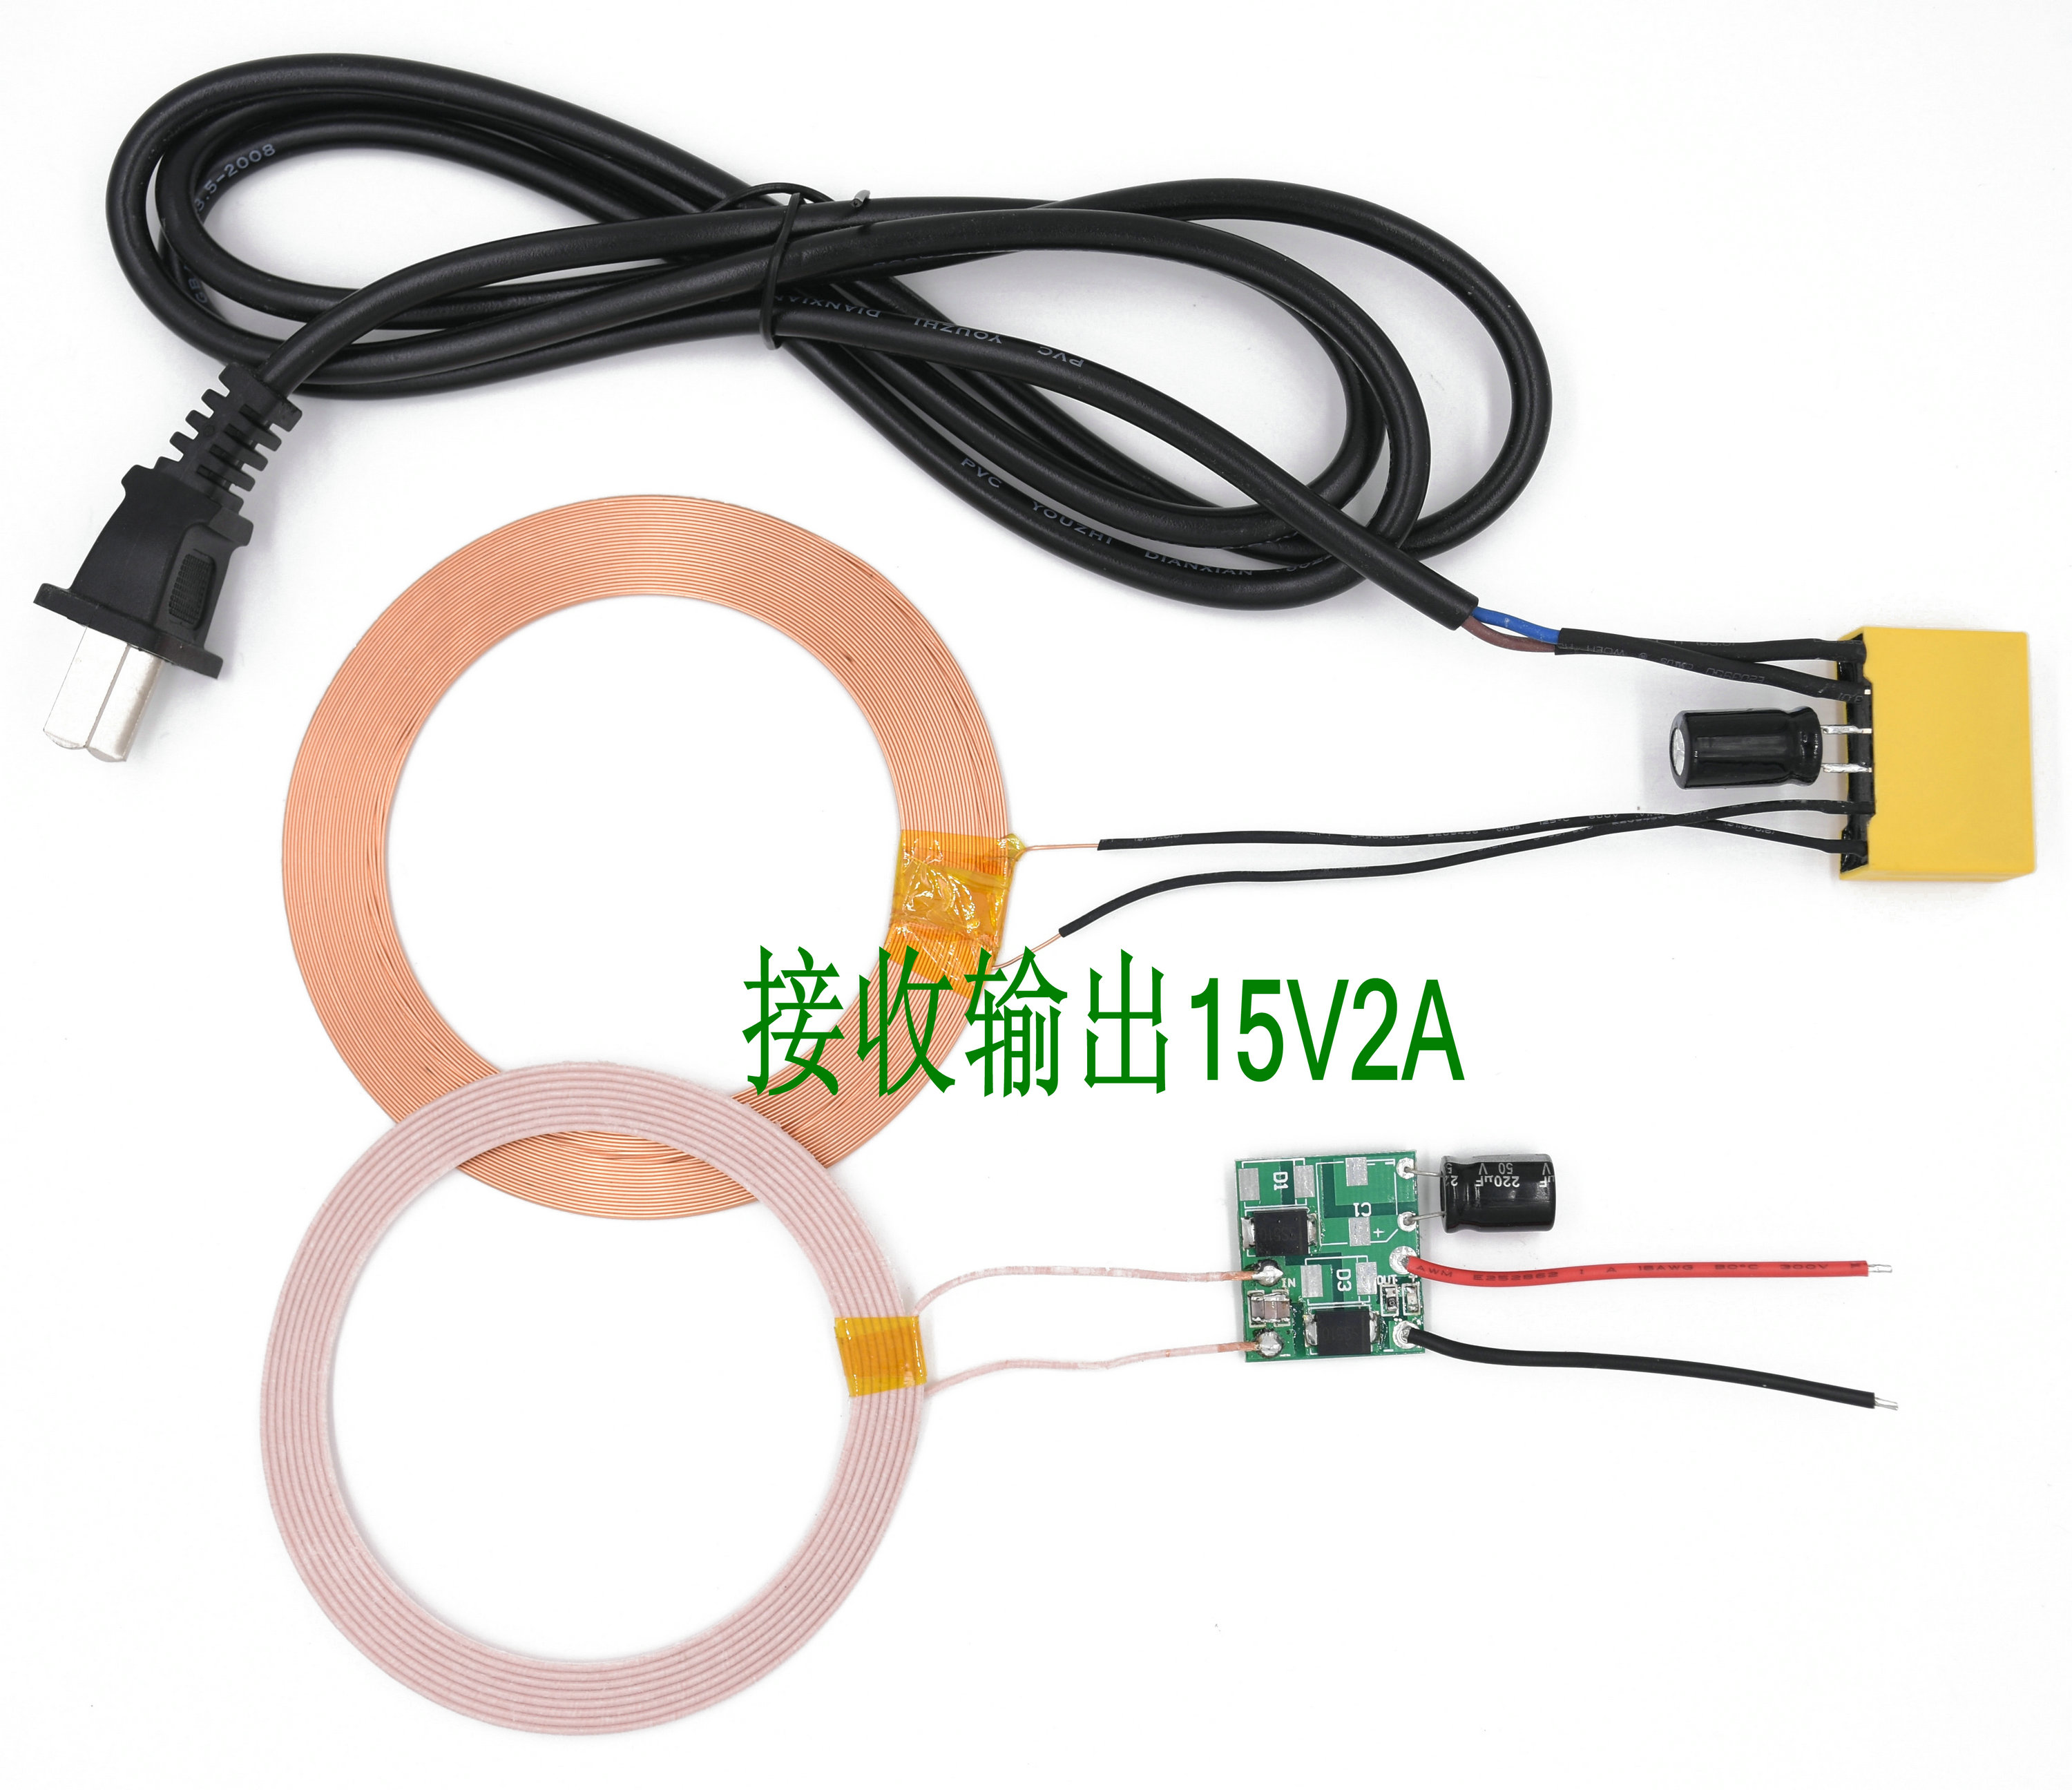 15V2A high power wireless power supply module wireless charging module wireless transmission module long distance wireless transmission module of wireless 600mm dc power supply module of high power wireless charging module